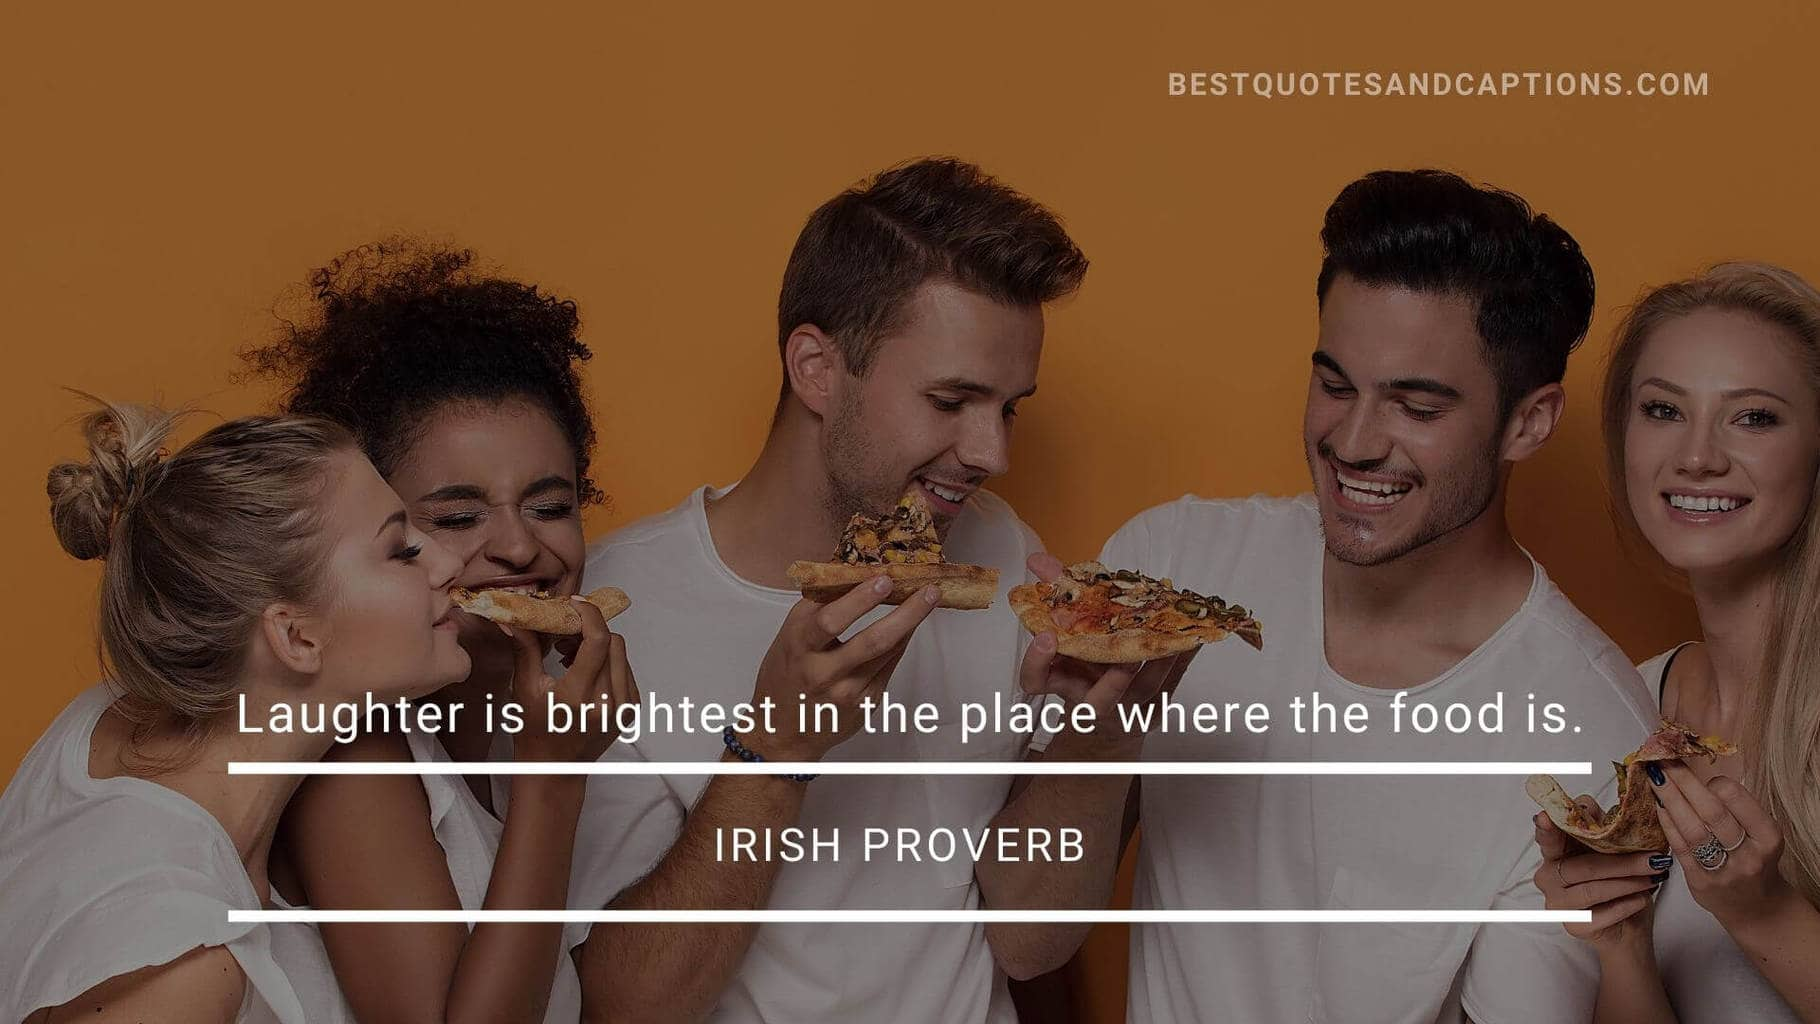 Laughter is brightest in the place where food is - Food proverb